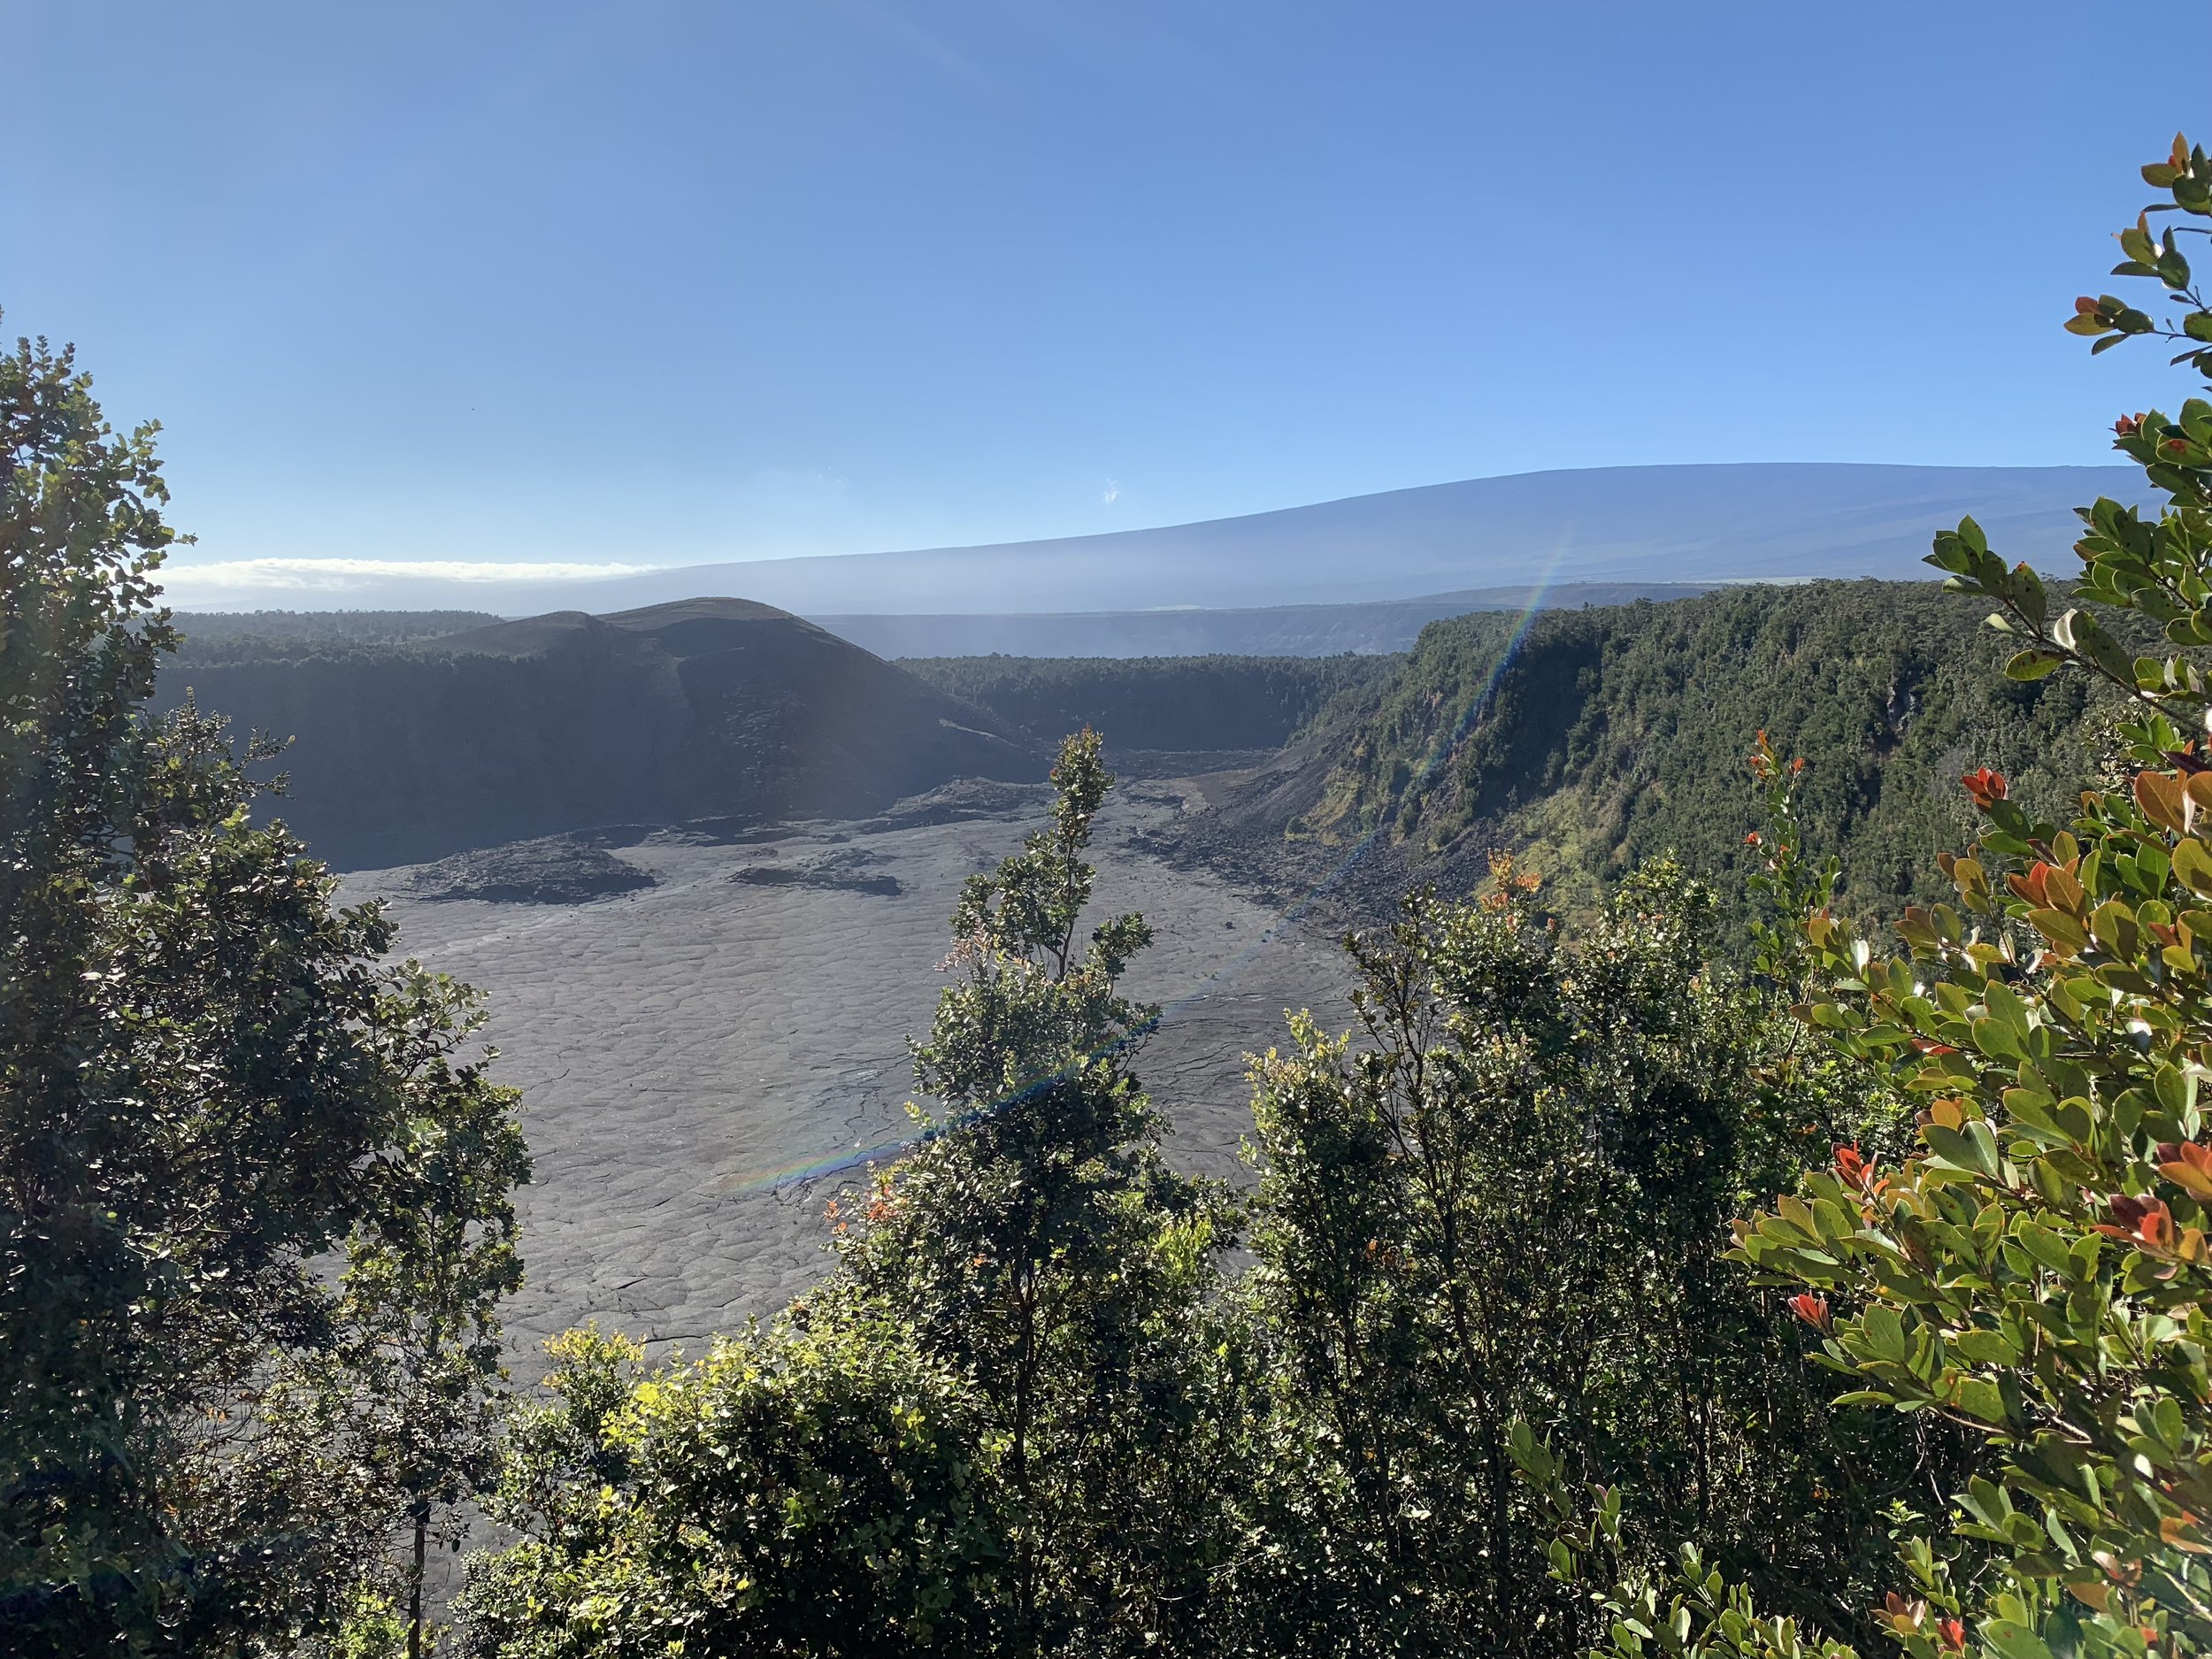 One of our first views was the Kilauea Iki overlook